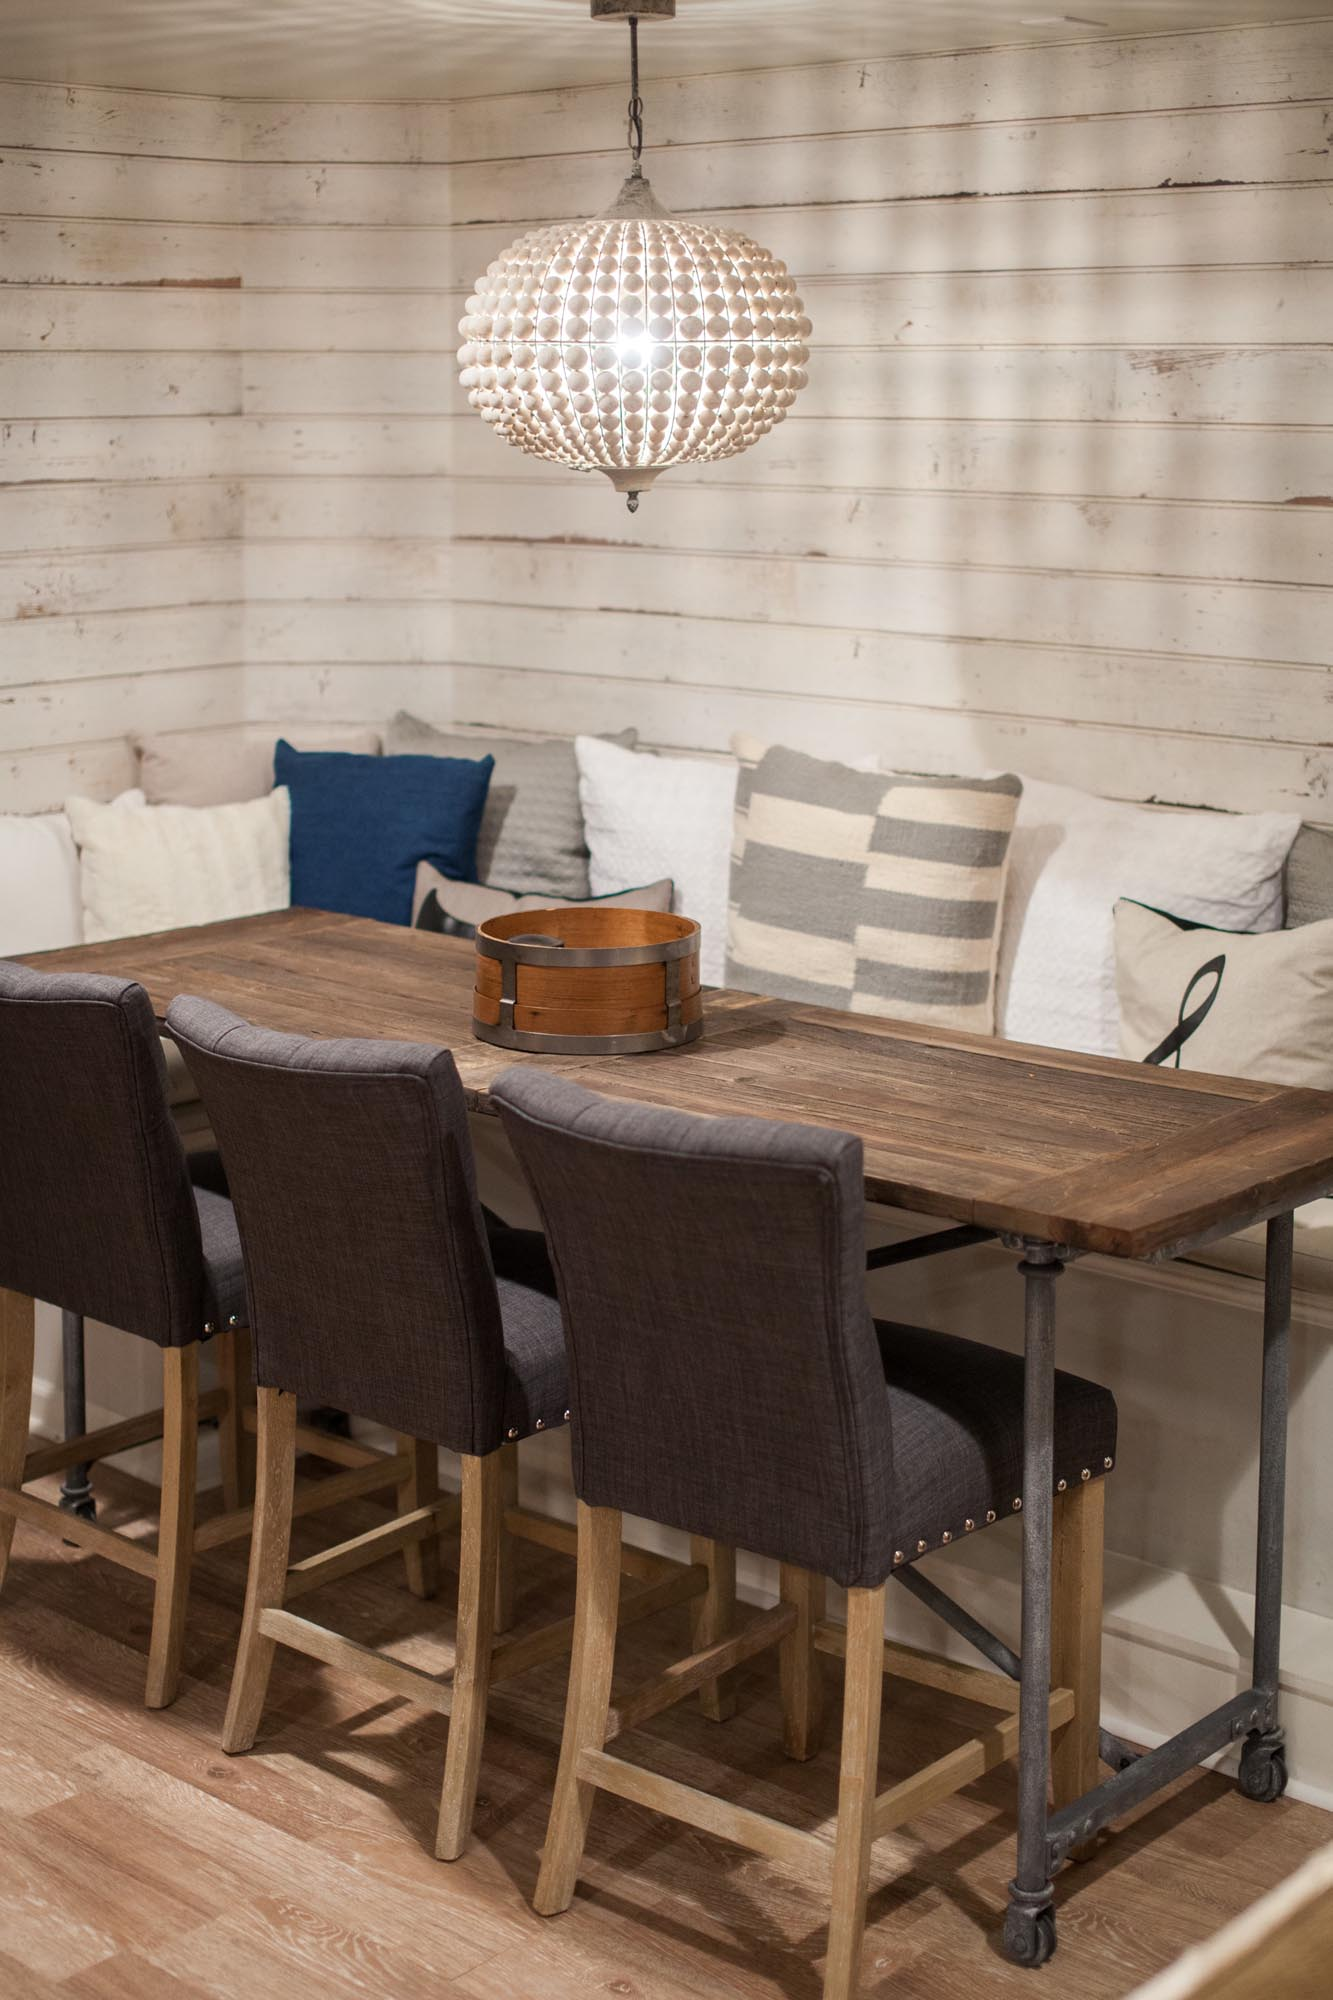 Wooden table with comfortable seating and shiplap walls